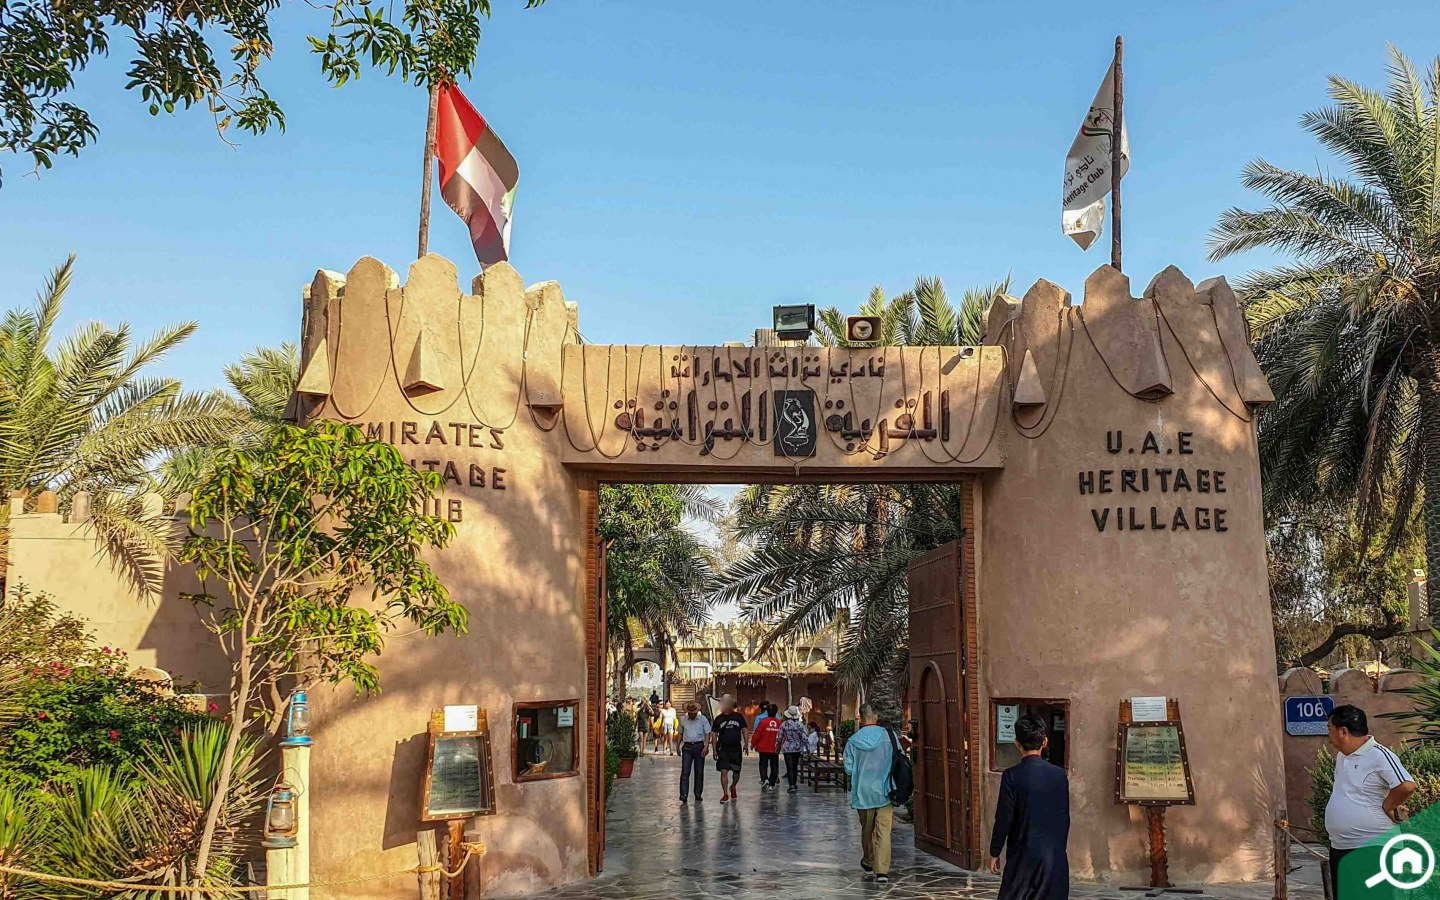 Entrance to Heritage Village, one of the places in Abu Dhabi to visit